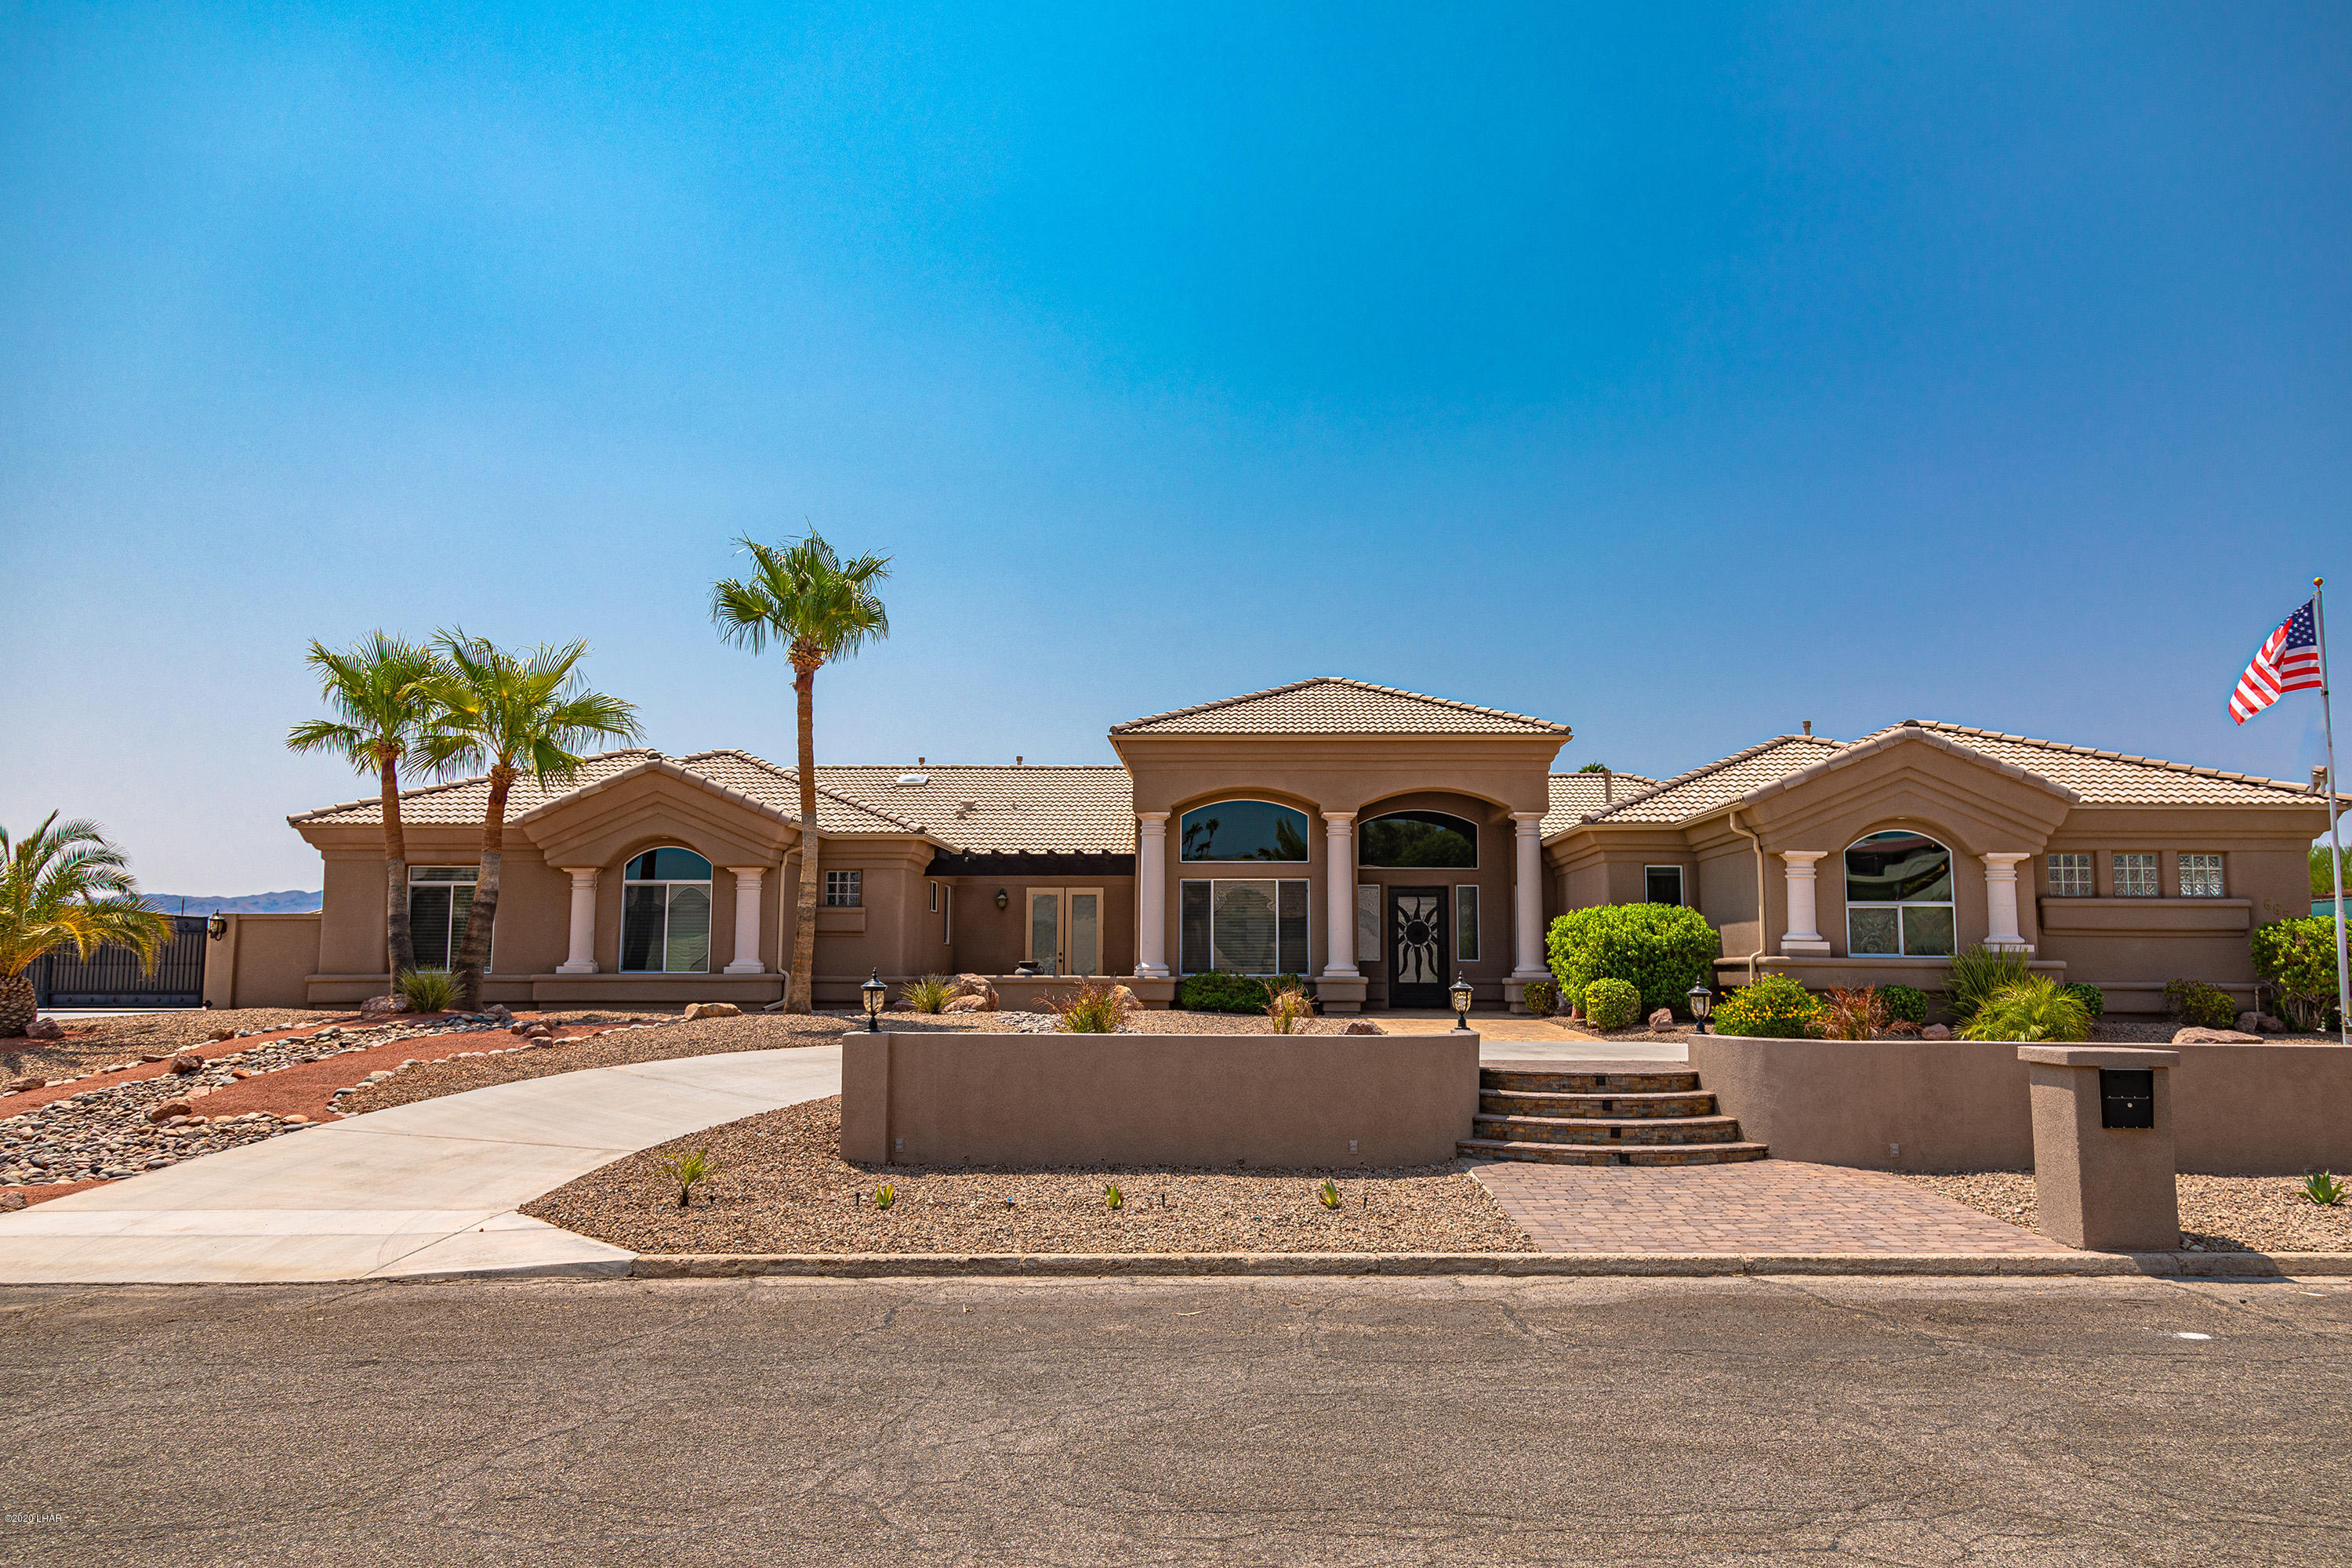 Photo of 665 Armour Dr, Lake Havasu City, AZ 86406